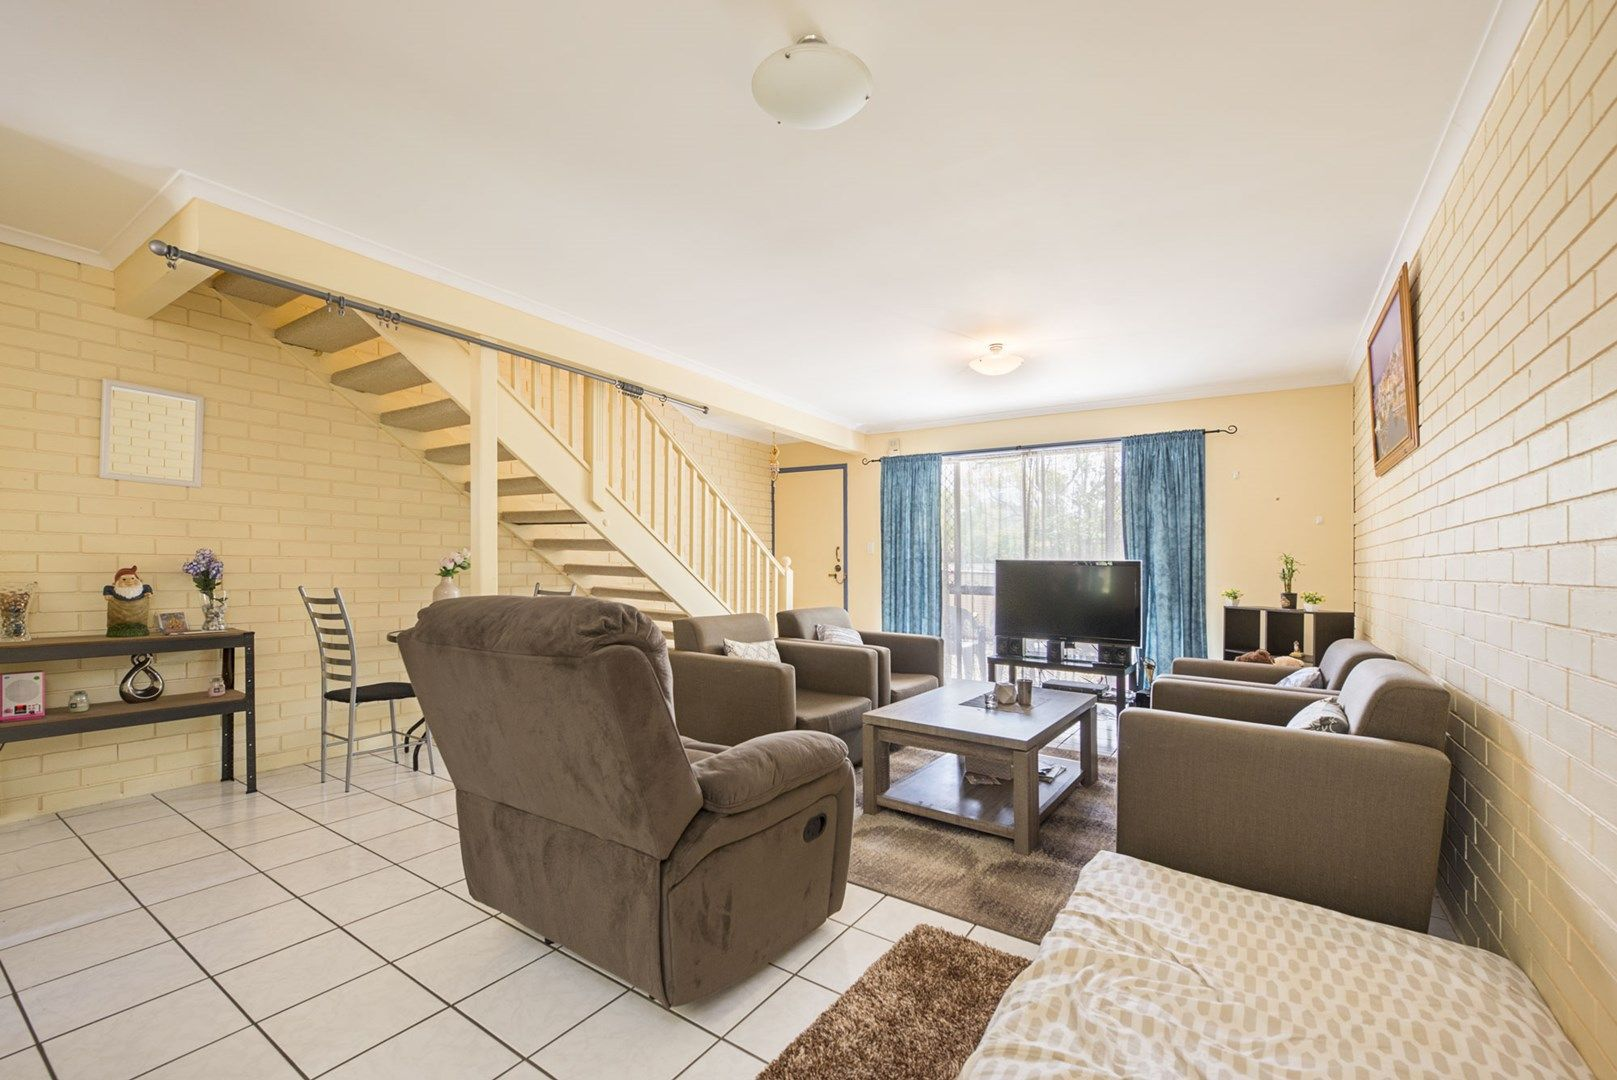 17/7 Chamberlain Avenue, Rochedale South QLD 4123, Image 0